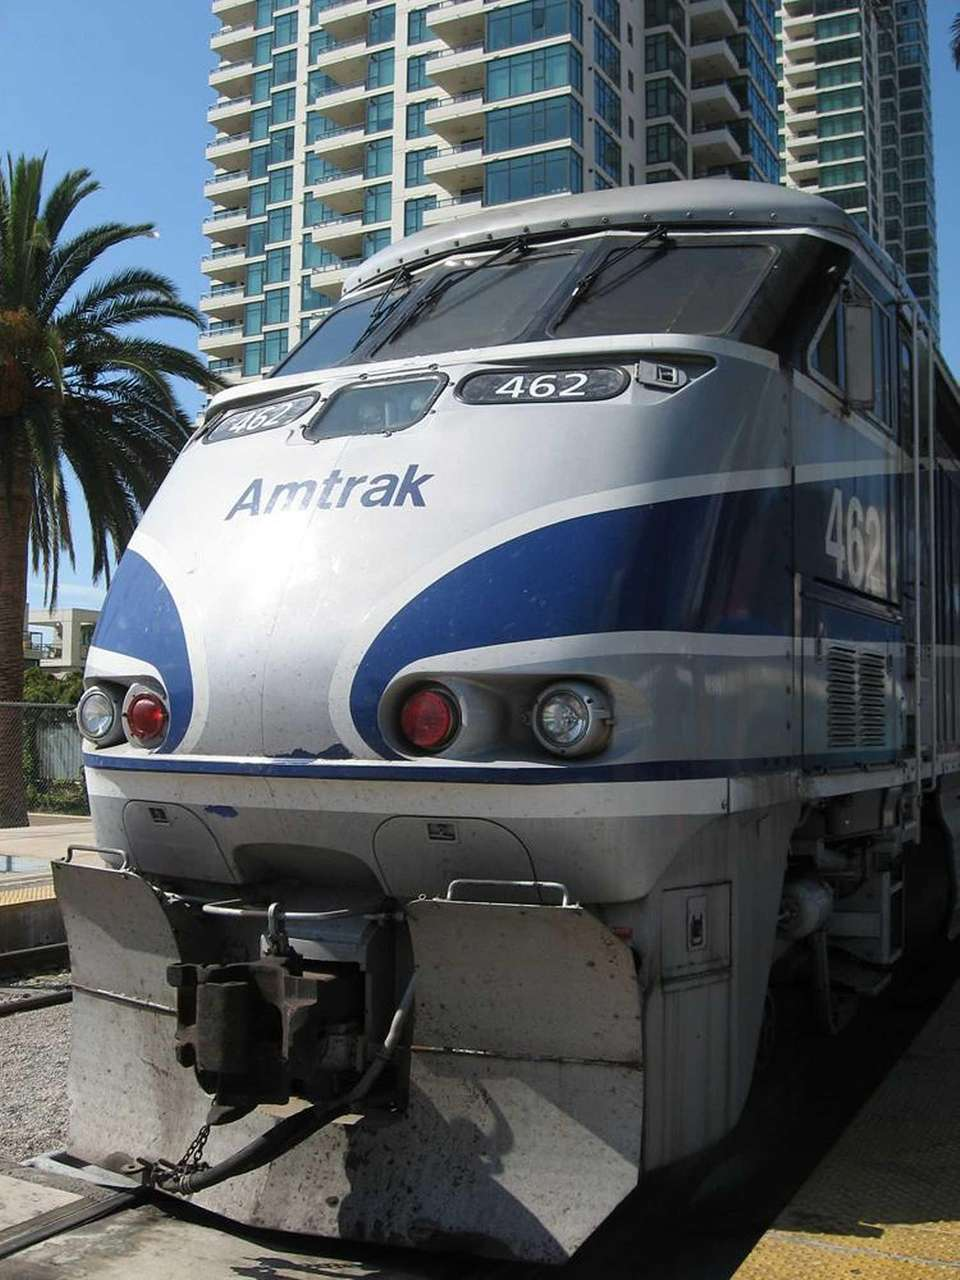 An Amtrak train rests at San Diego Union